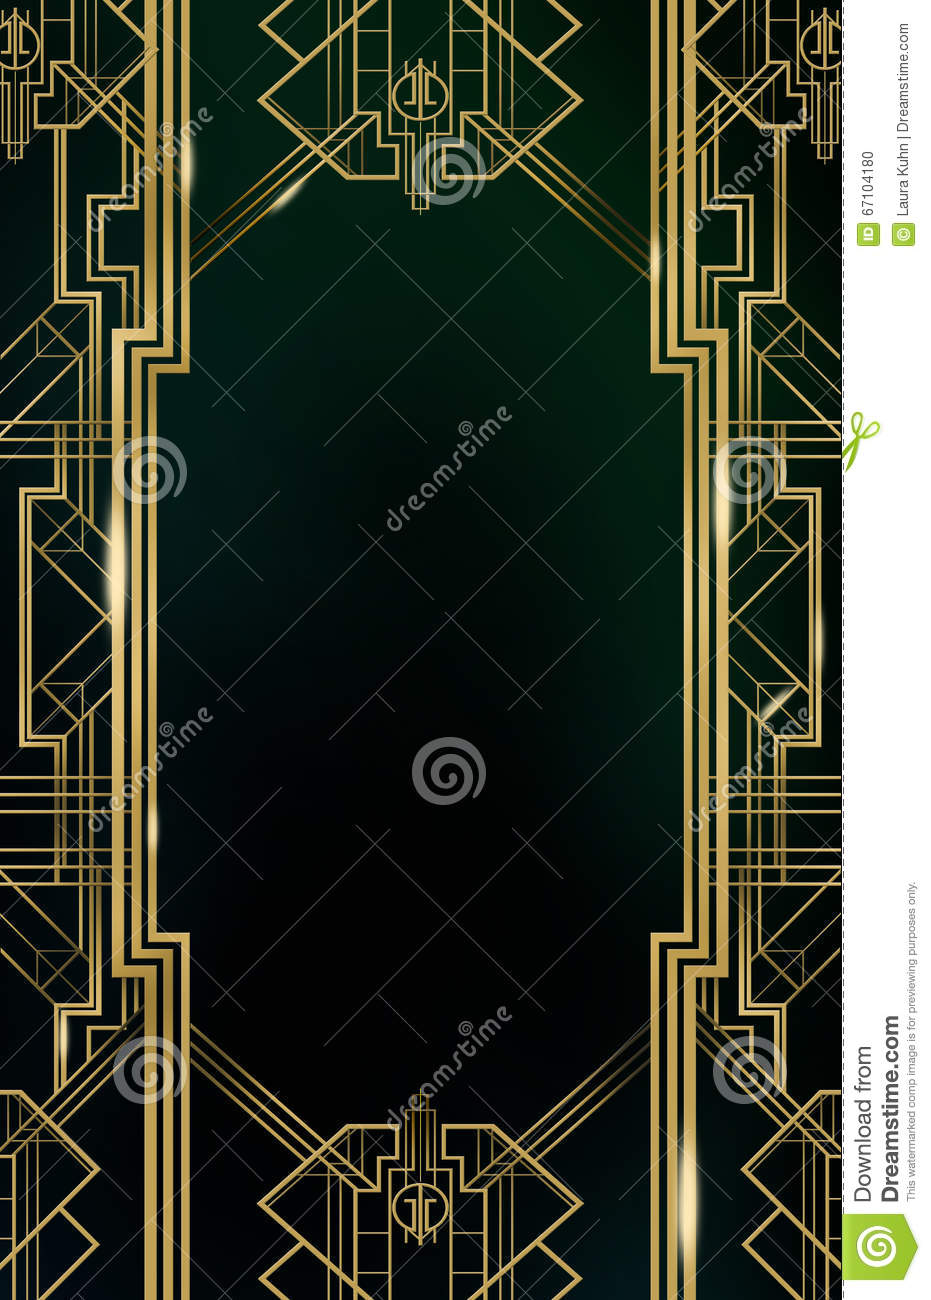 great gatsby writing style The high quality of materials and fine craftsmanship is absolutely amazing to give you an example, william vanderbilt's home, the marble house, reported to cost $11 million (remember this.